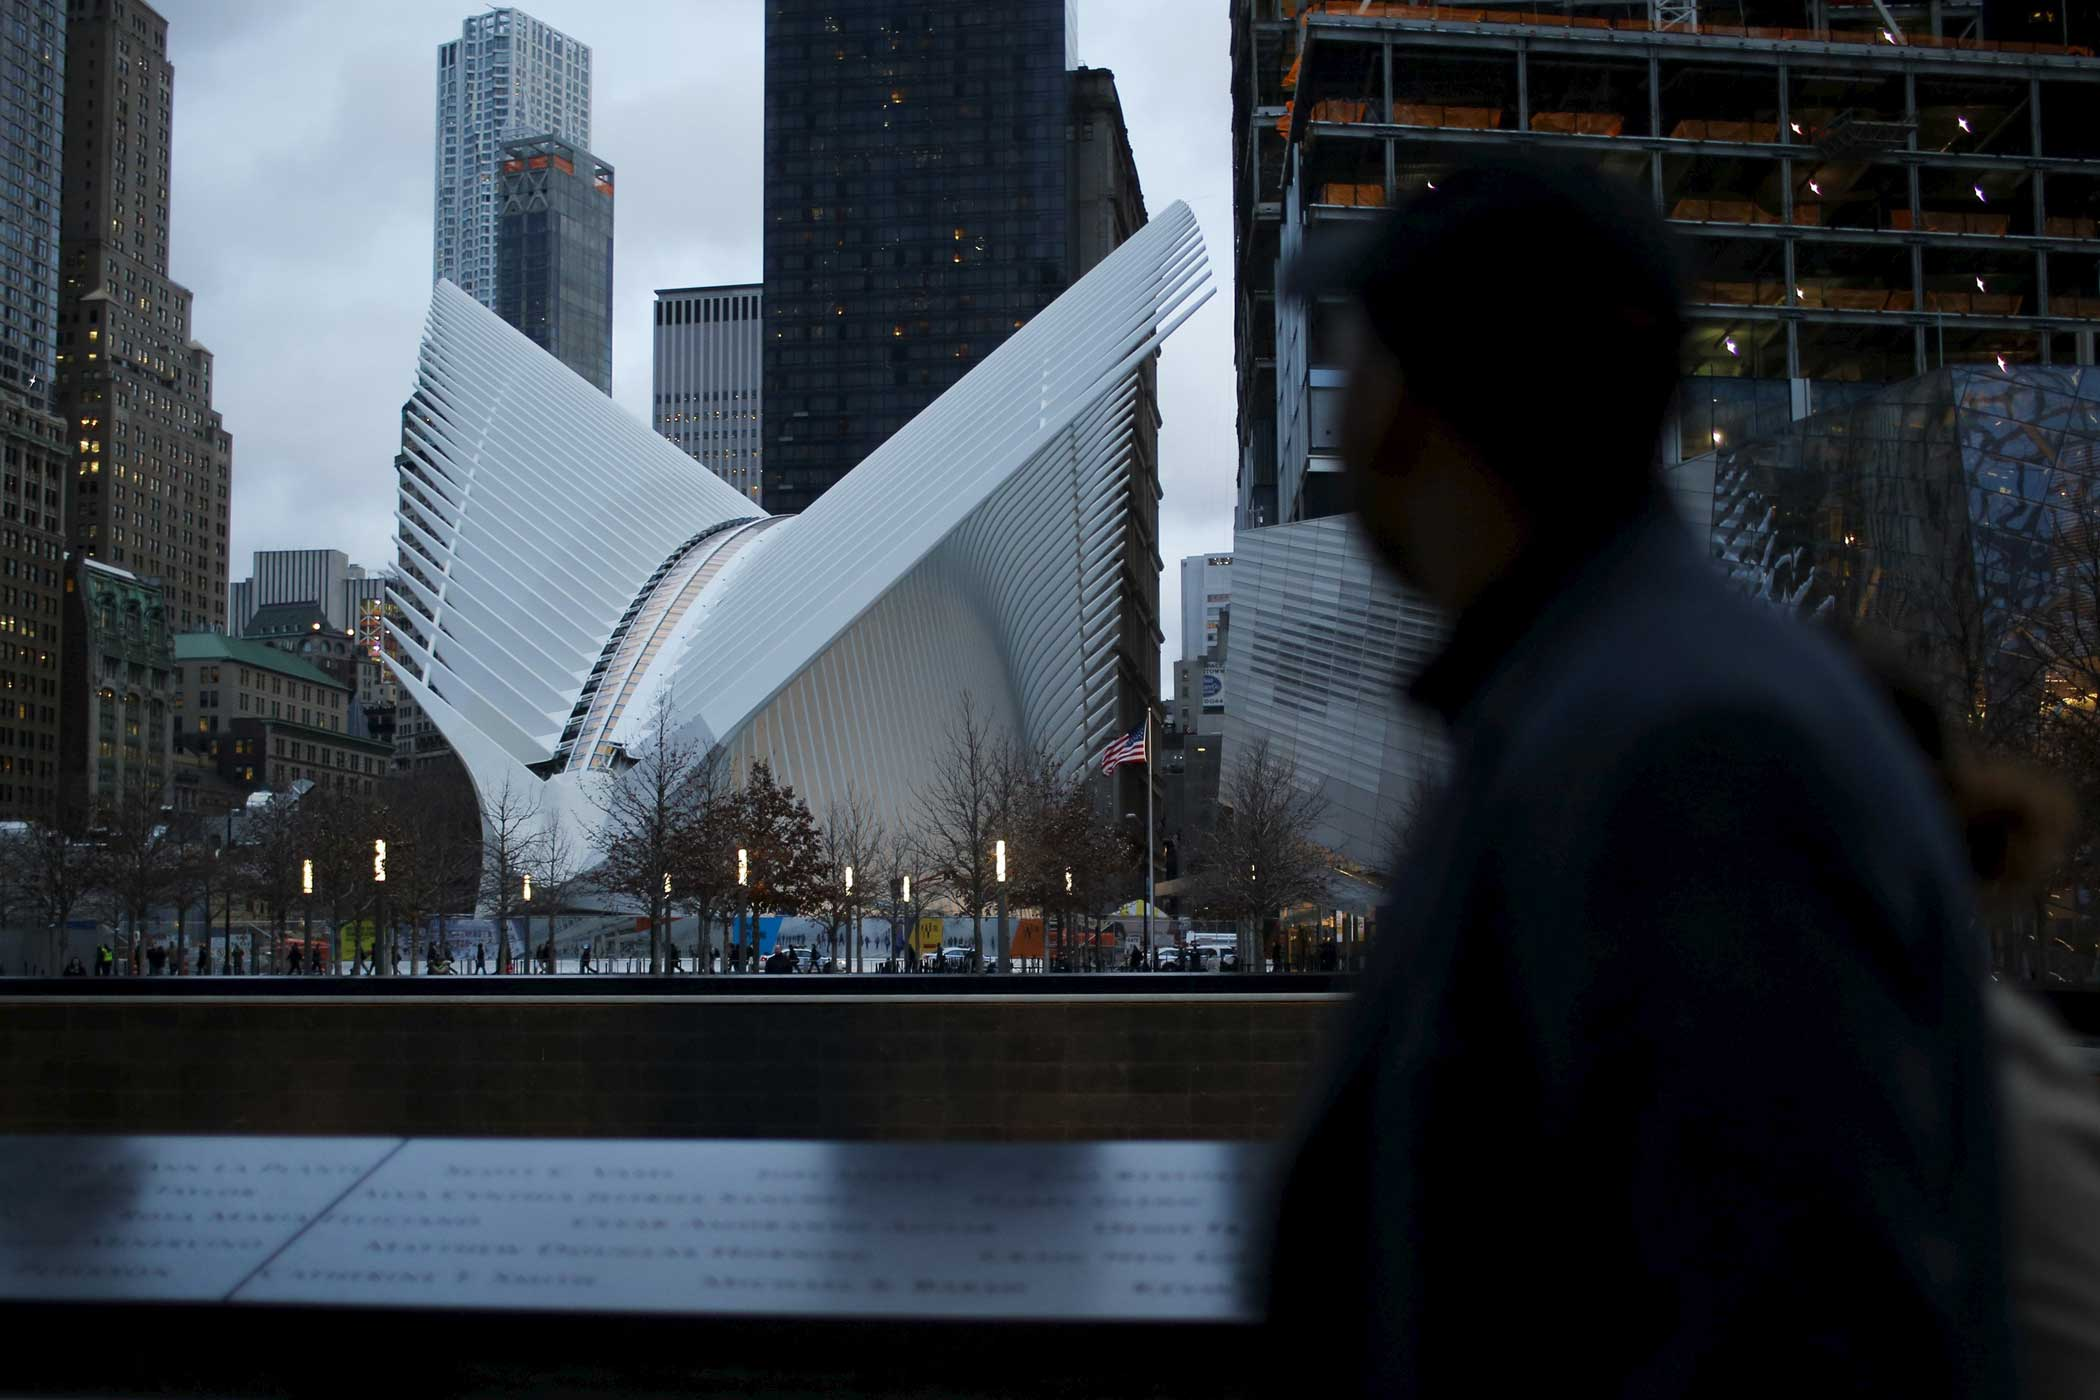 The Oculus structure of the World Trade Center Transportation Hub is pictured as people visit the World Trade Center site, formerly known as  Ground Zero , in New York on Feb. 25, 2016.